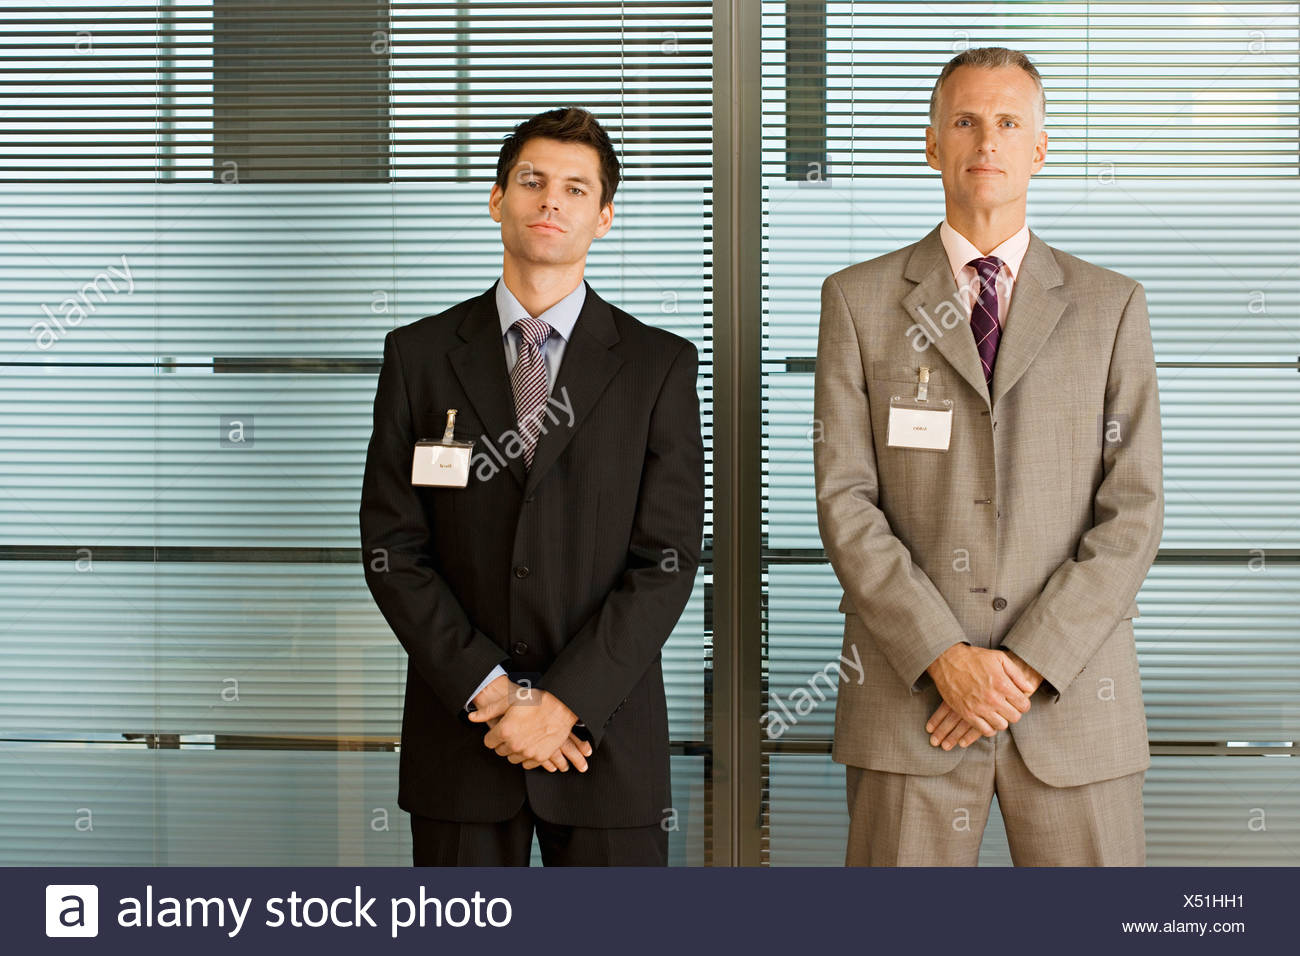 Two confident businessmen wearing identity cards standing side by side front view portrait - Stock Image